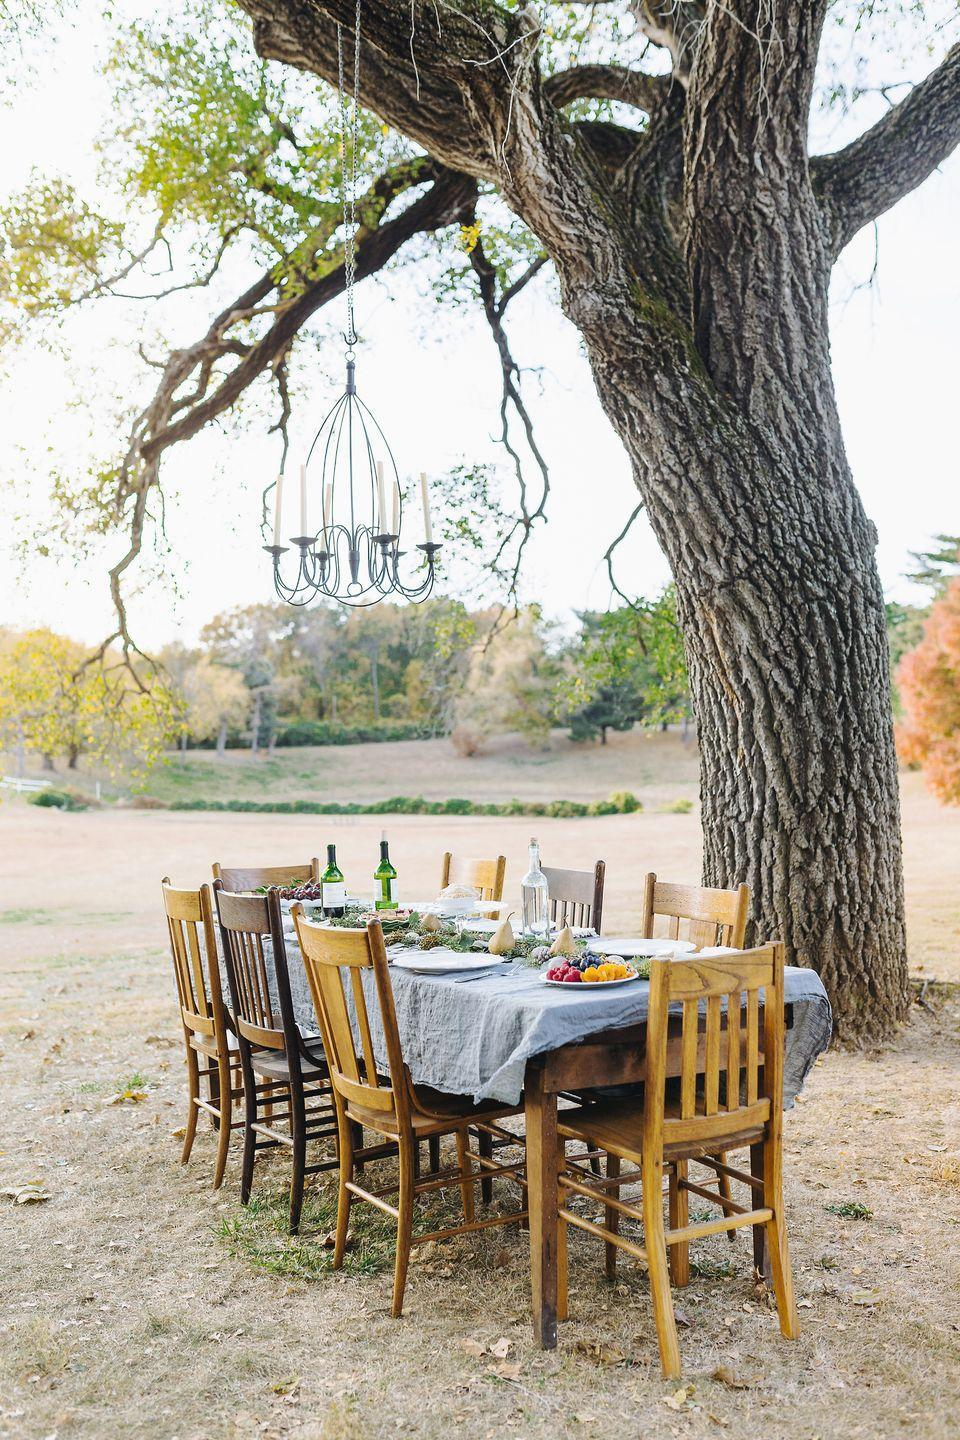 """<p>Fall weather can be unpredictable, depending on where you live, but hosting an outdoor party in fall is unexpected—and your last chance before the chilly winter months. However, always have an indoor back-up plan in case of sudden bad weather. </p><p><a class=""""link rapid-noclick-resp"""" href=""""https://www.amazon.com/Wrought-Hanging-Candelabra-Outdoor-Lighting/dp/B01H2AAB8Q/?tag=syn-yahoo-20&ascsubtag=%5Bartid%7C10050.g.1219%5Bsrc%7Cyahoo-us"""" rel=""""nofollow noopener"""" target=""""_blank"""" data-ylk=""""slk:SHOP OUTDOOR CHANDELIERS"""">SHOP OUTDOOR CHANDELIERS</a></p>"""